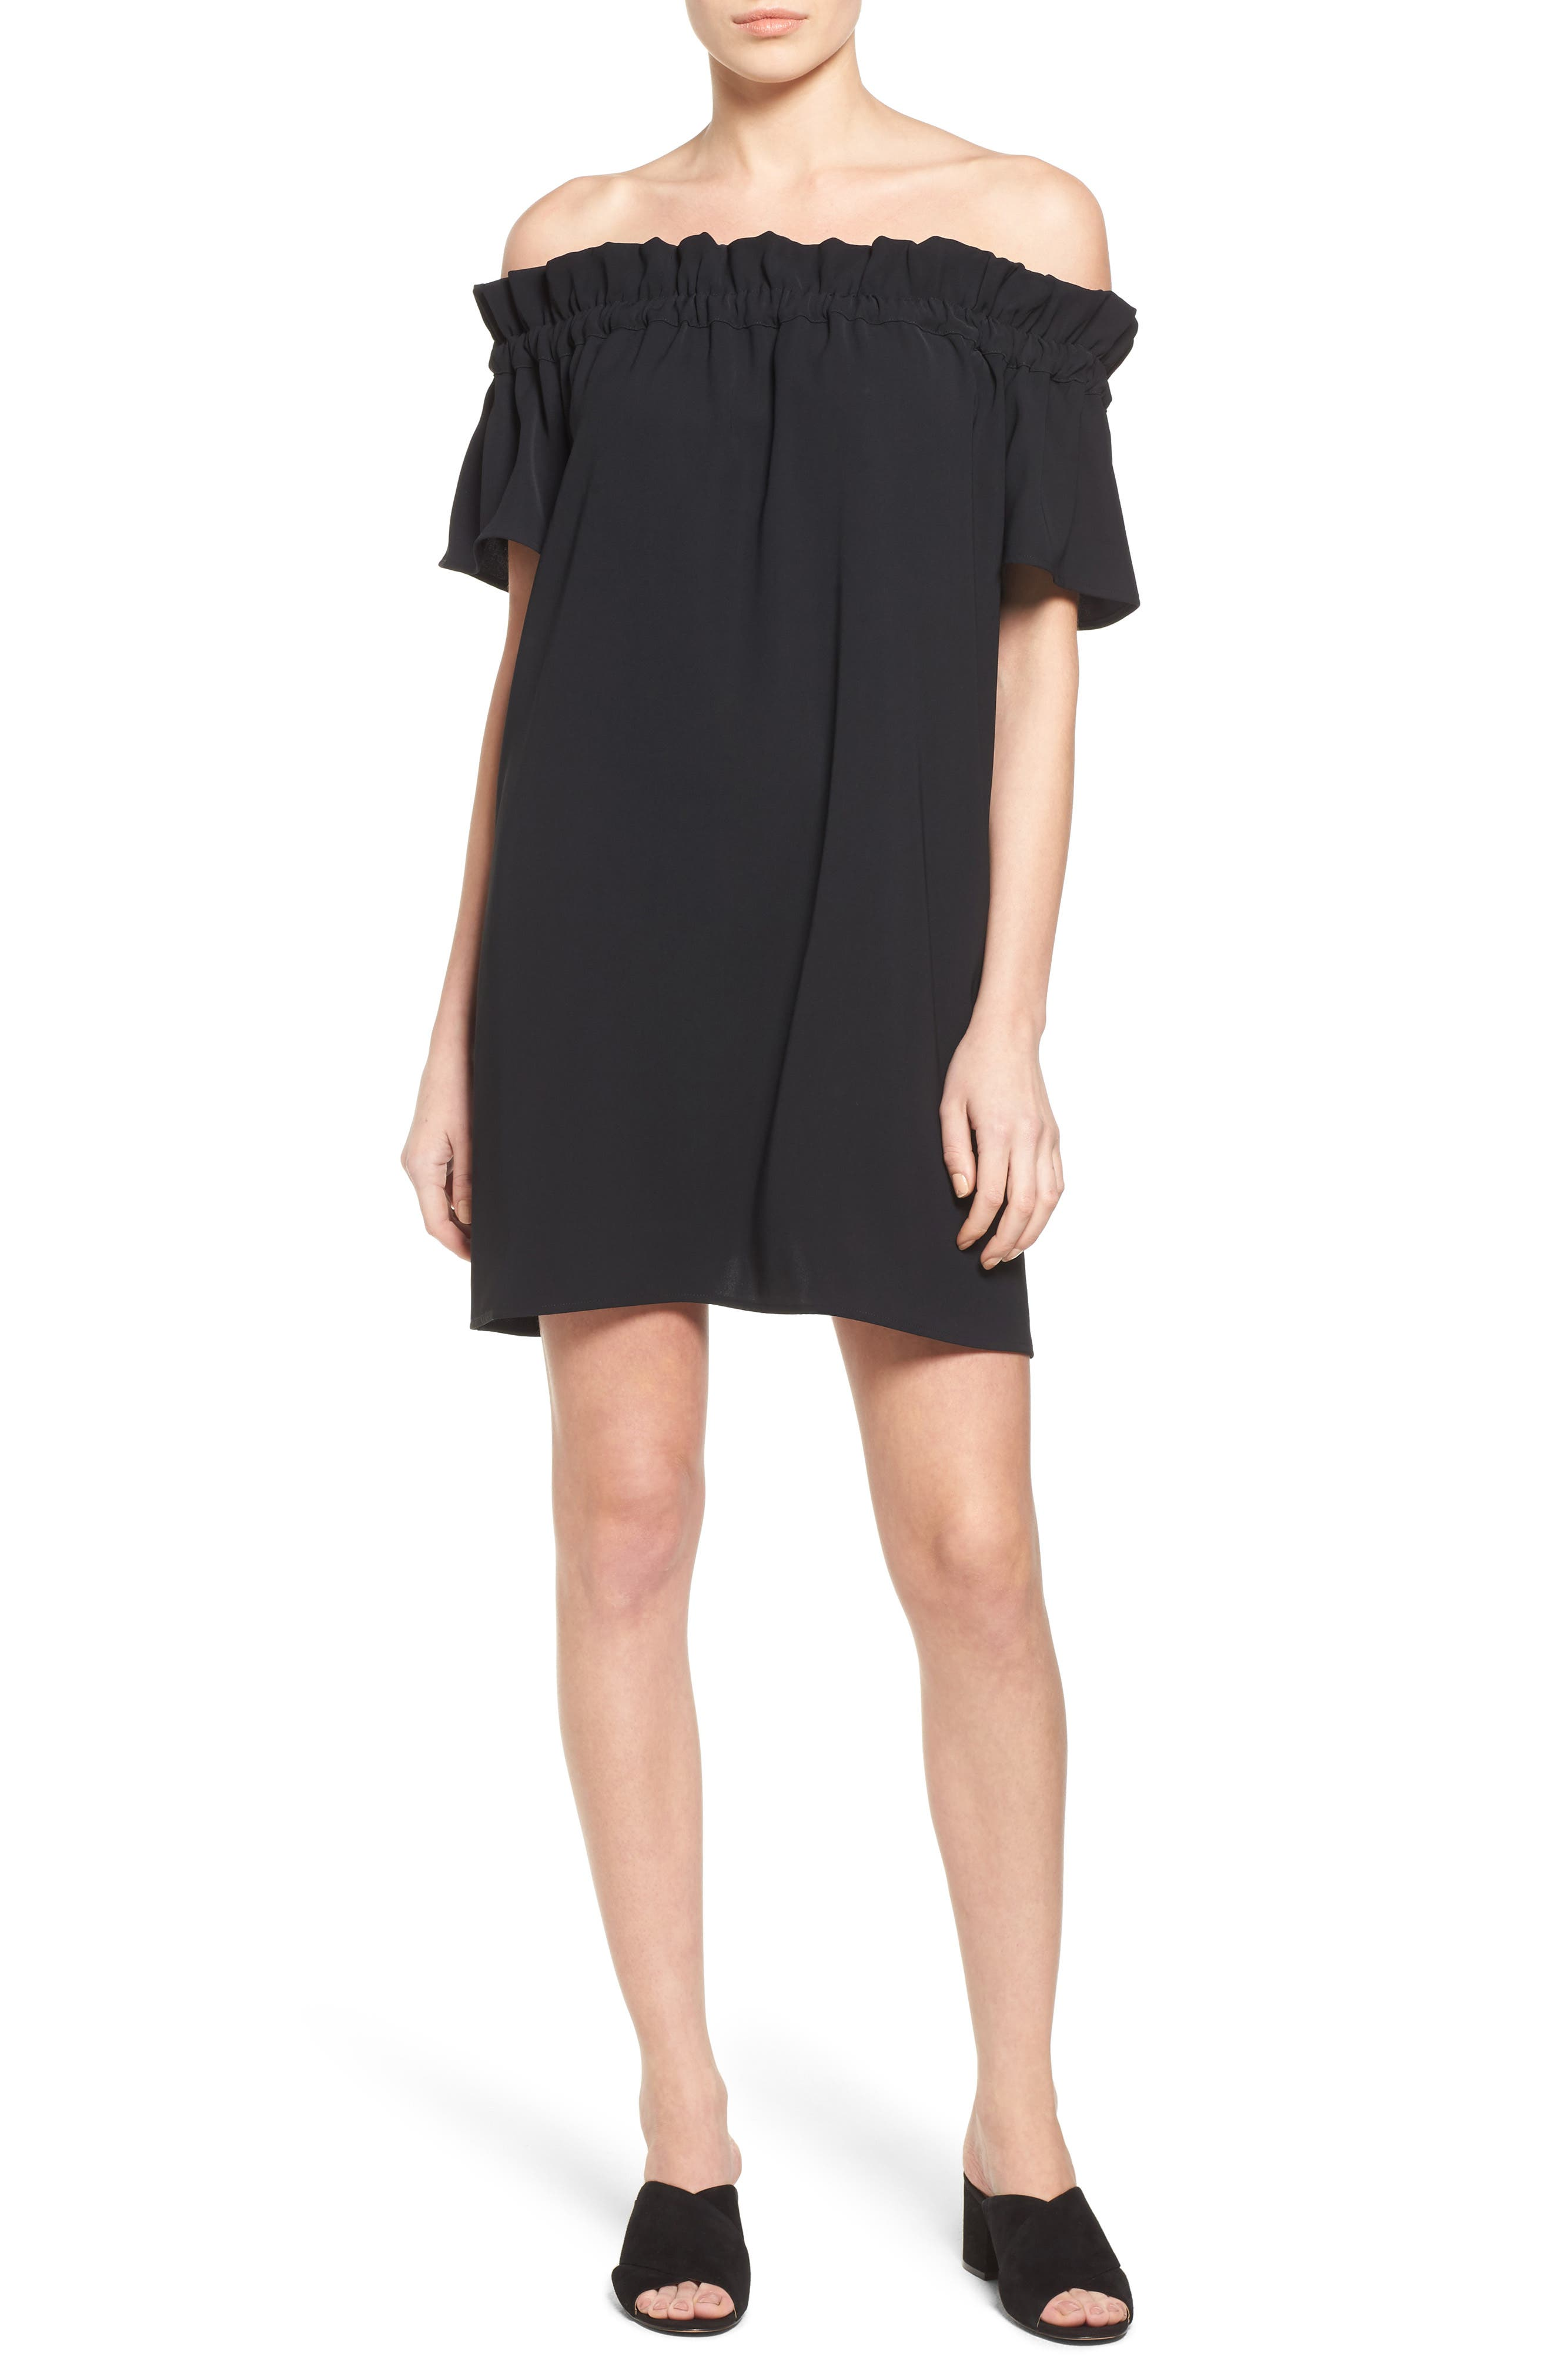 Off the Shoulder Dress,                             Main thumbnail 1, color,                             Black